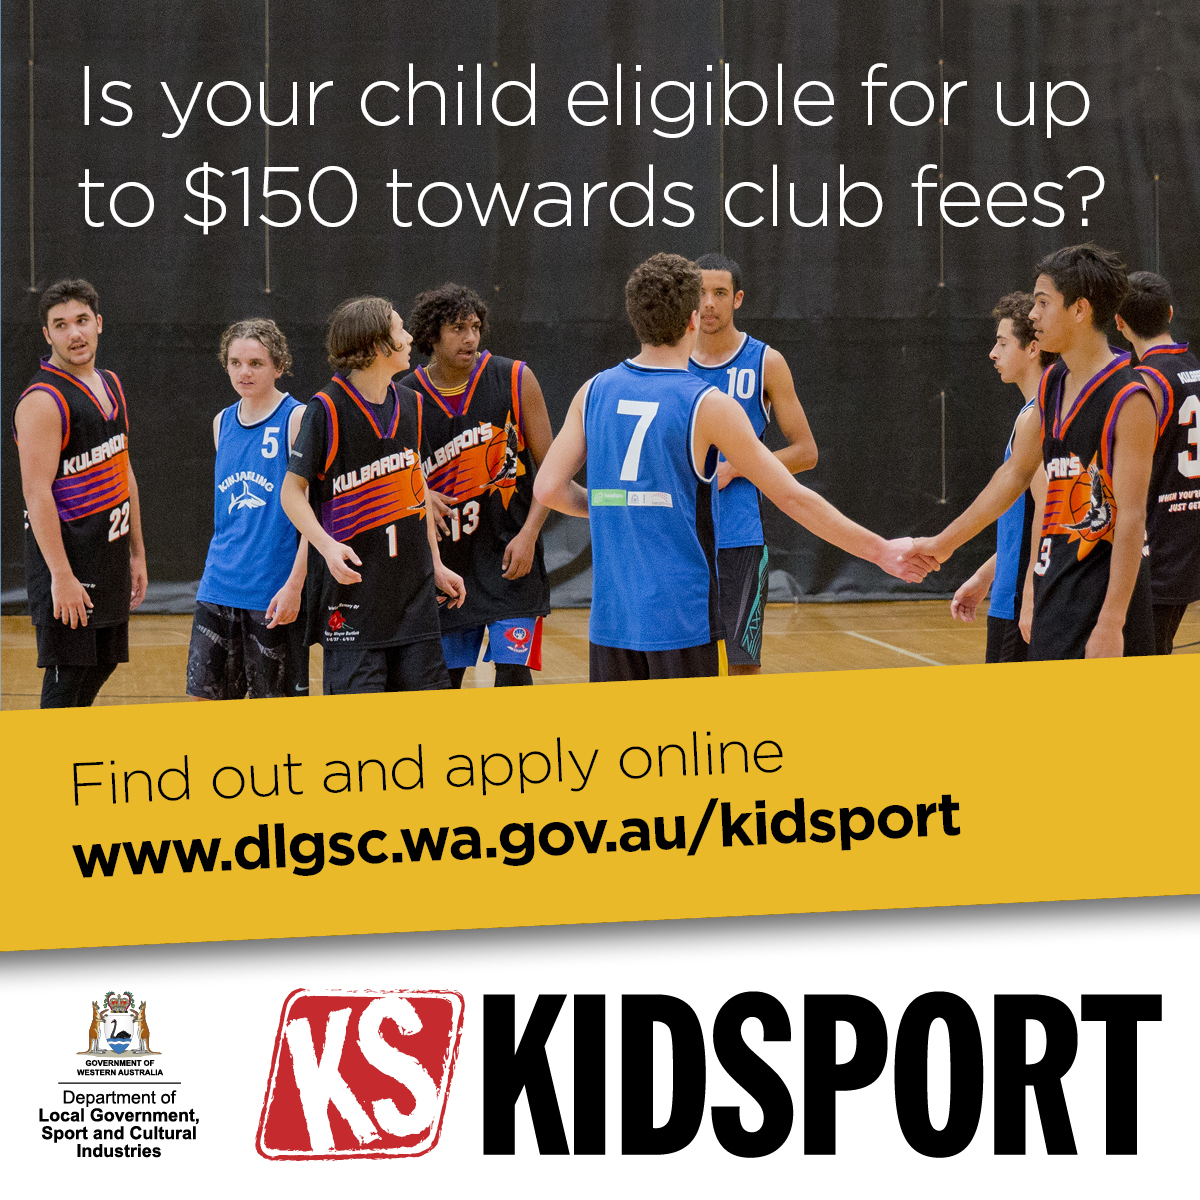 KidSport website image Is Your Child Eligible